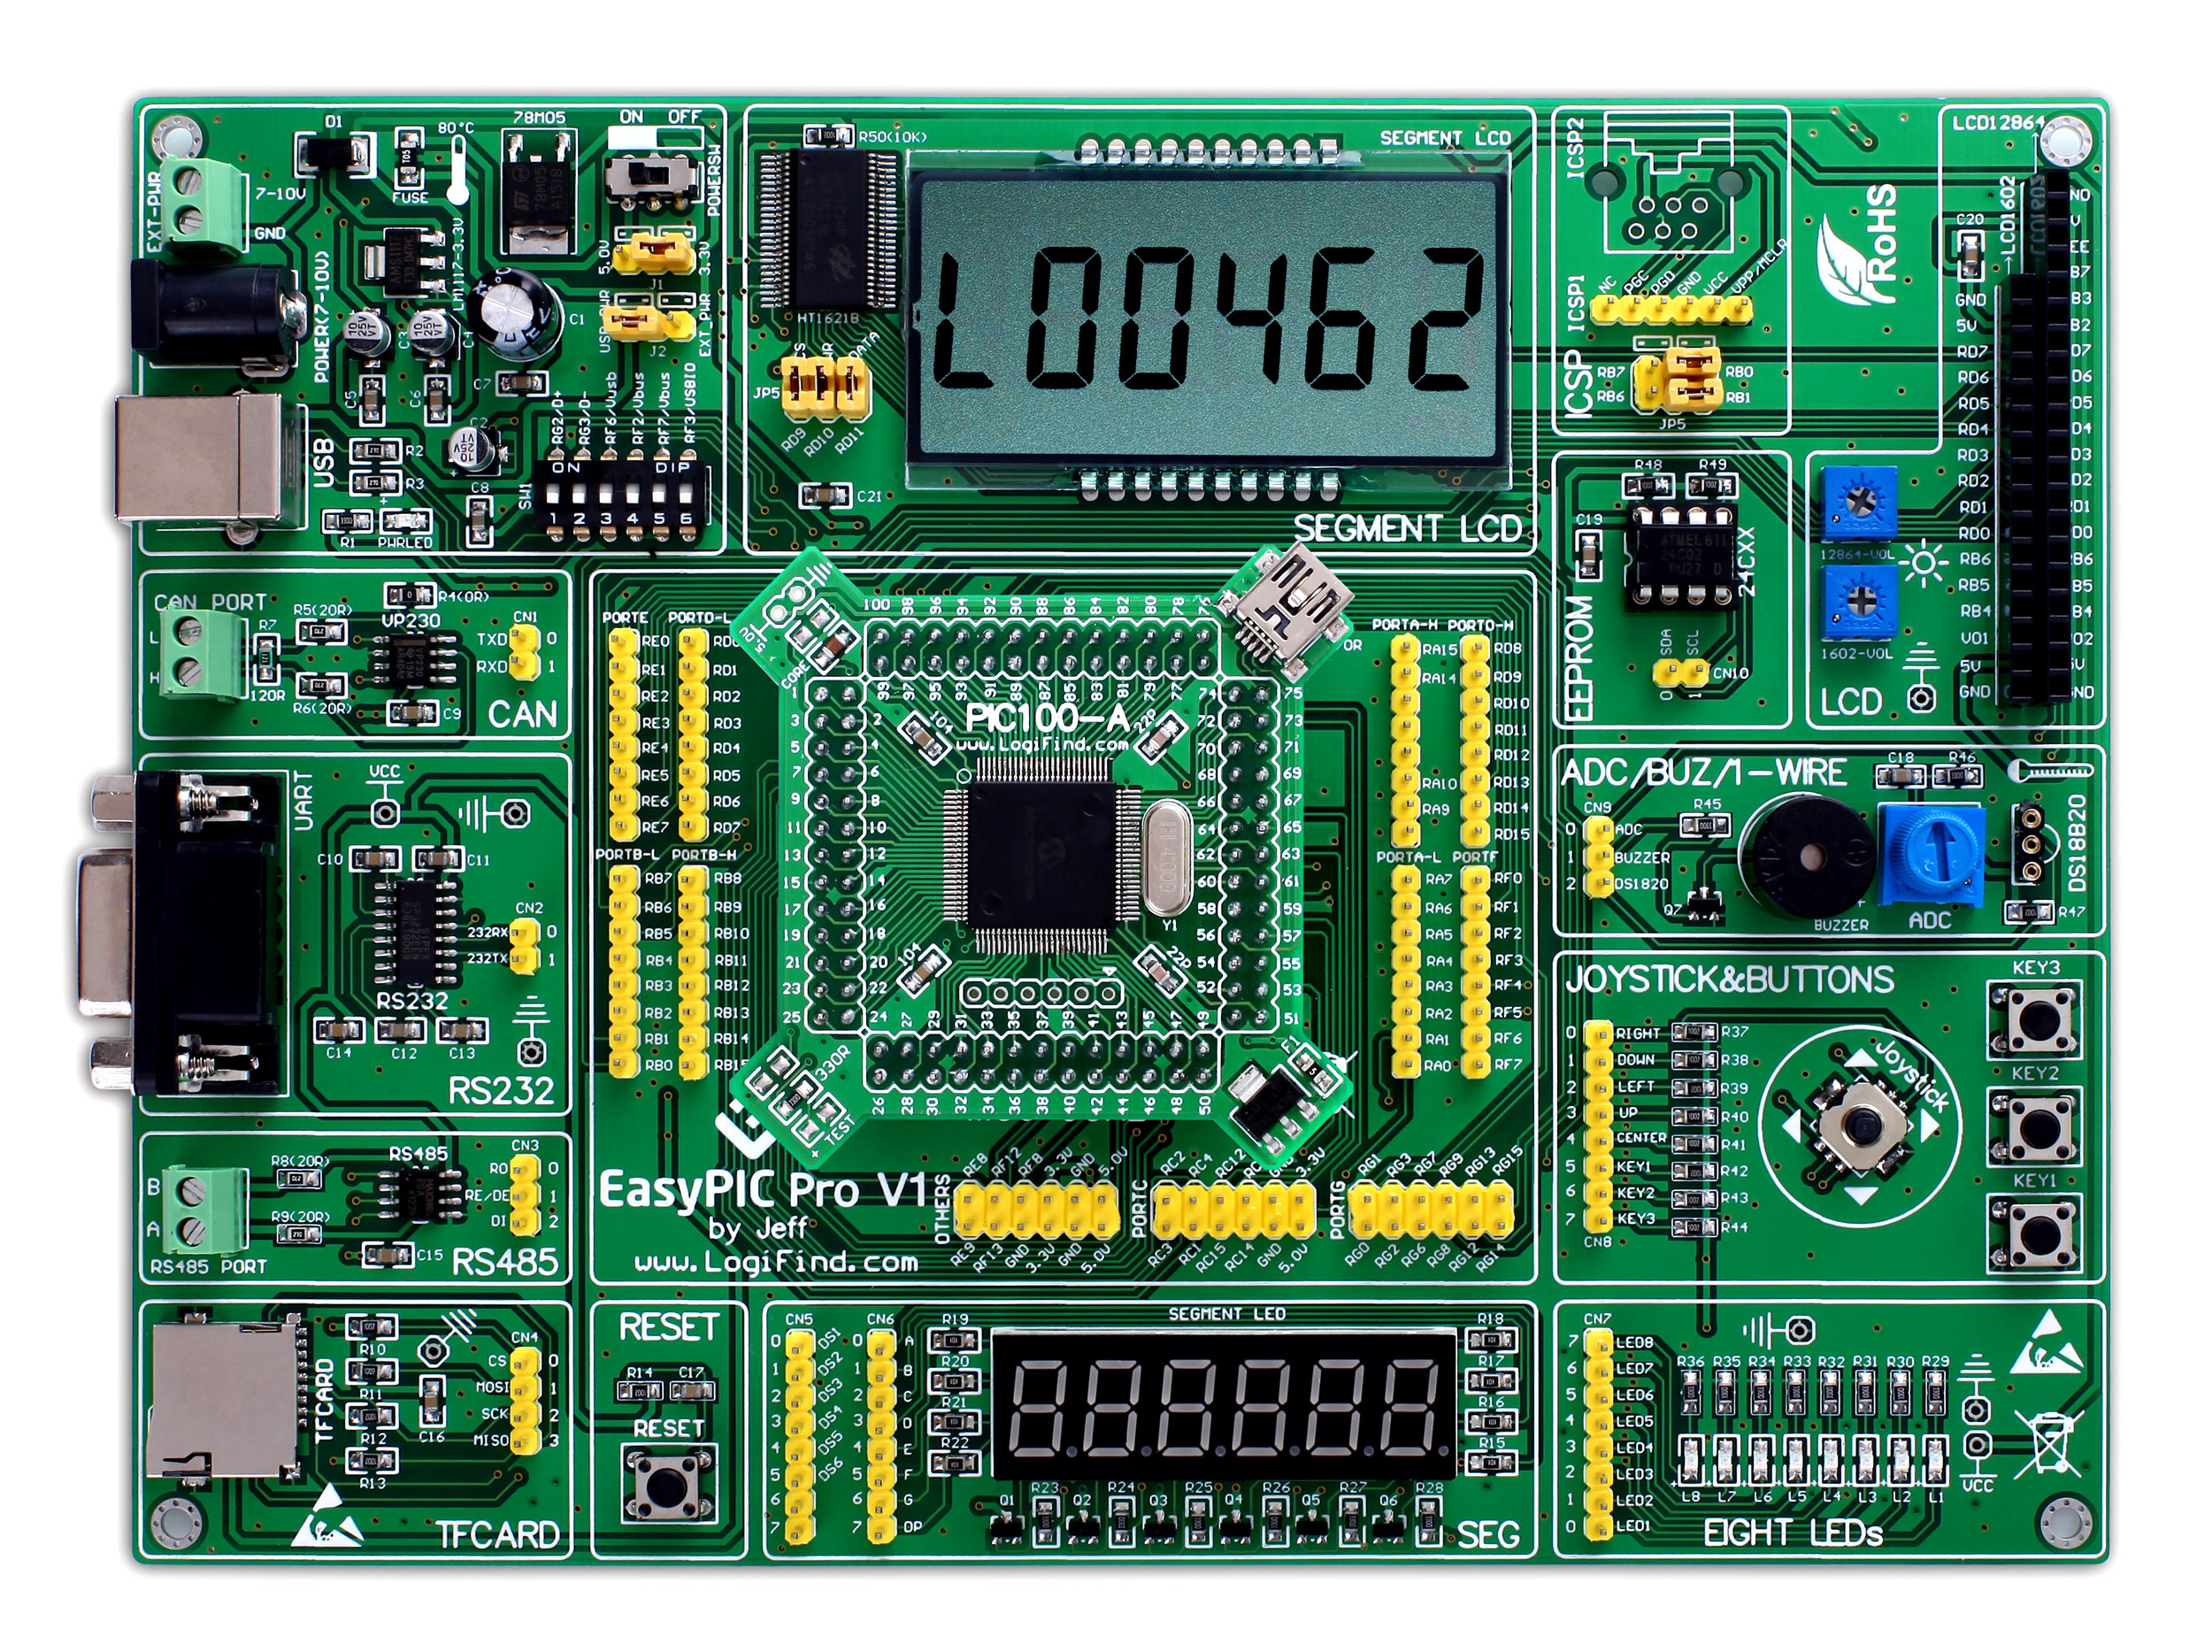 EasyPIC Pro Learning Development Board DsPIC PIC32 PIC24 with DsPIC33FJ256MC710